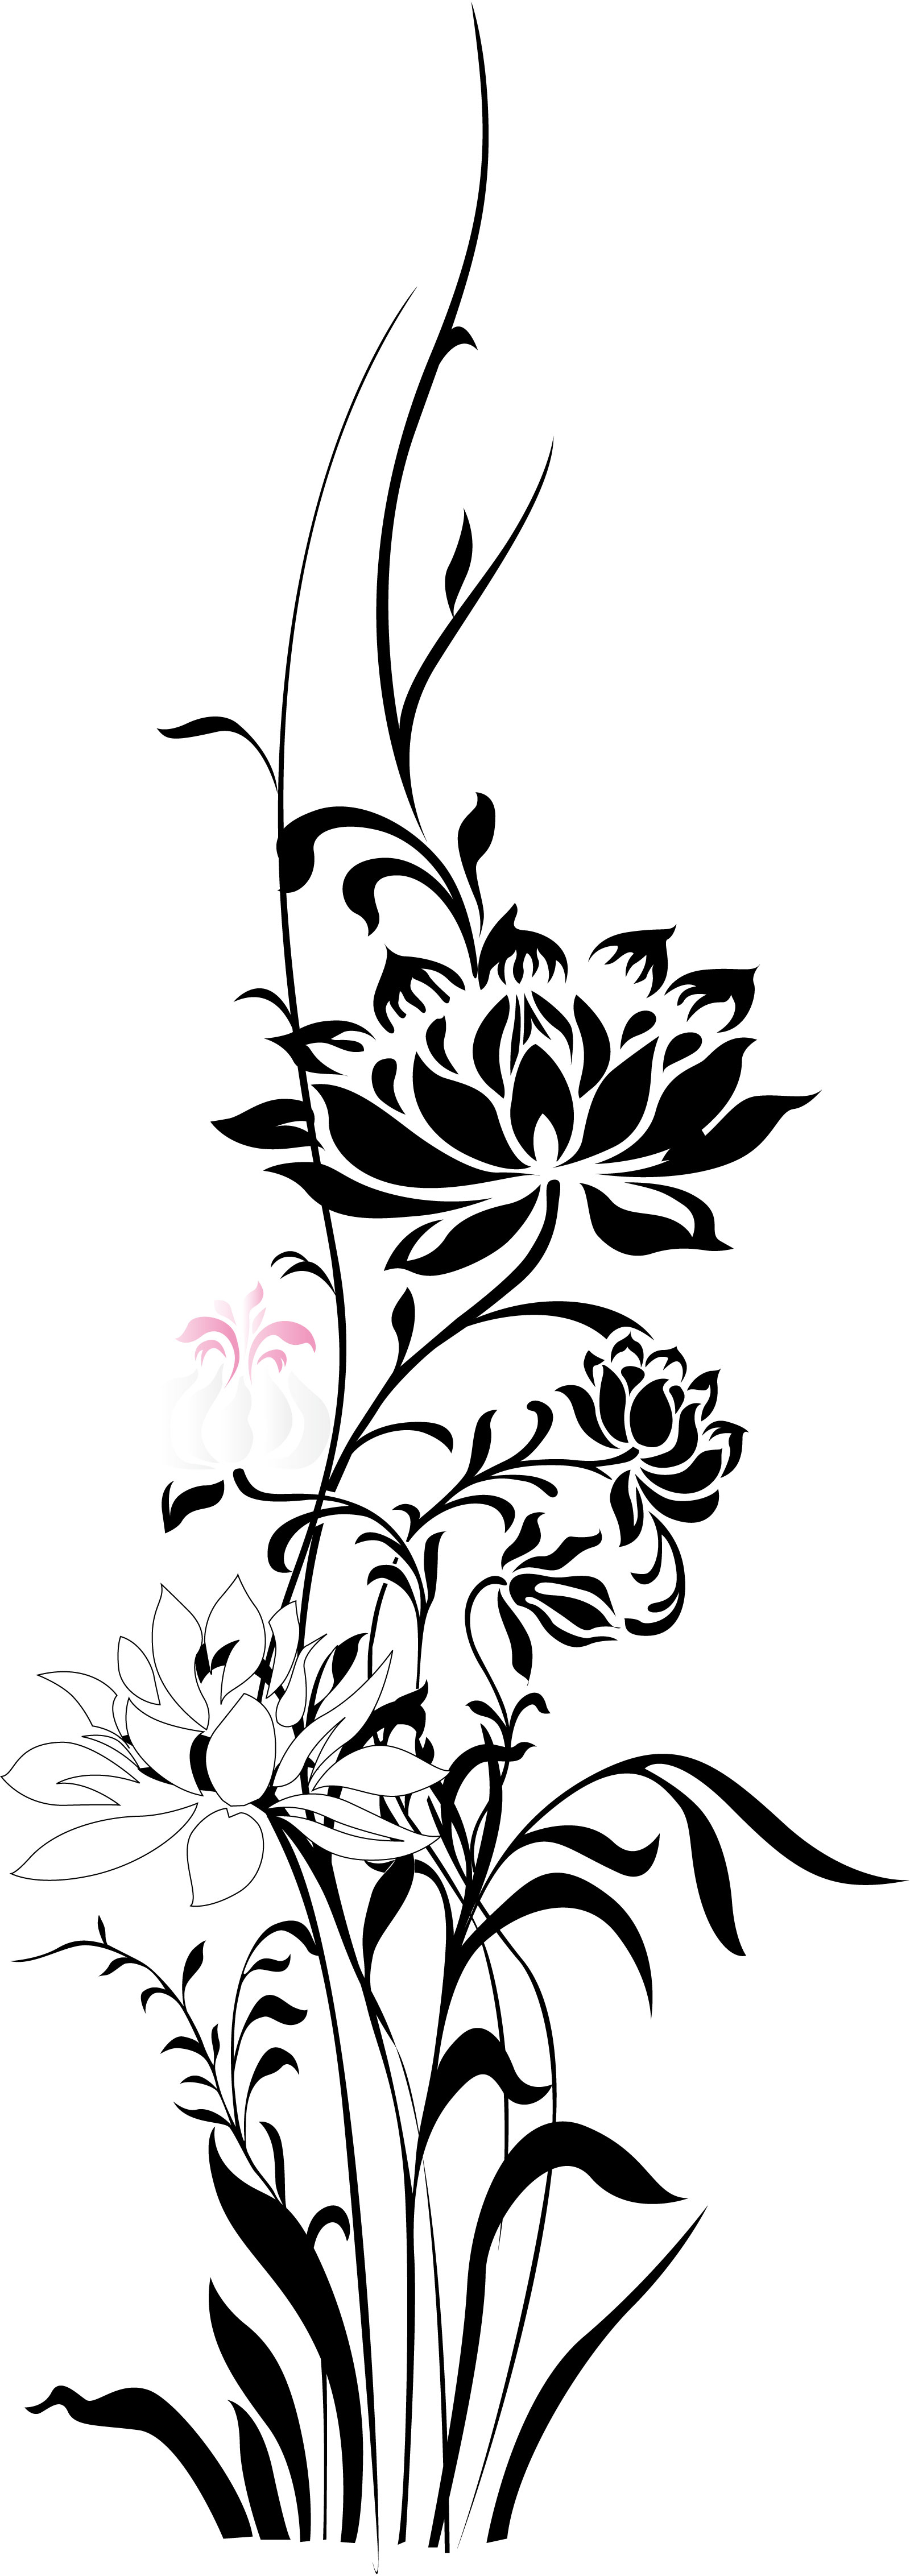 chinesefontdesign.com 2017 03 07 08 40 31 Beautiful lotus flower patterns China Illustrations Vectors AI ESP